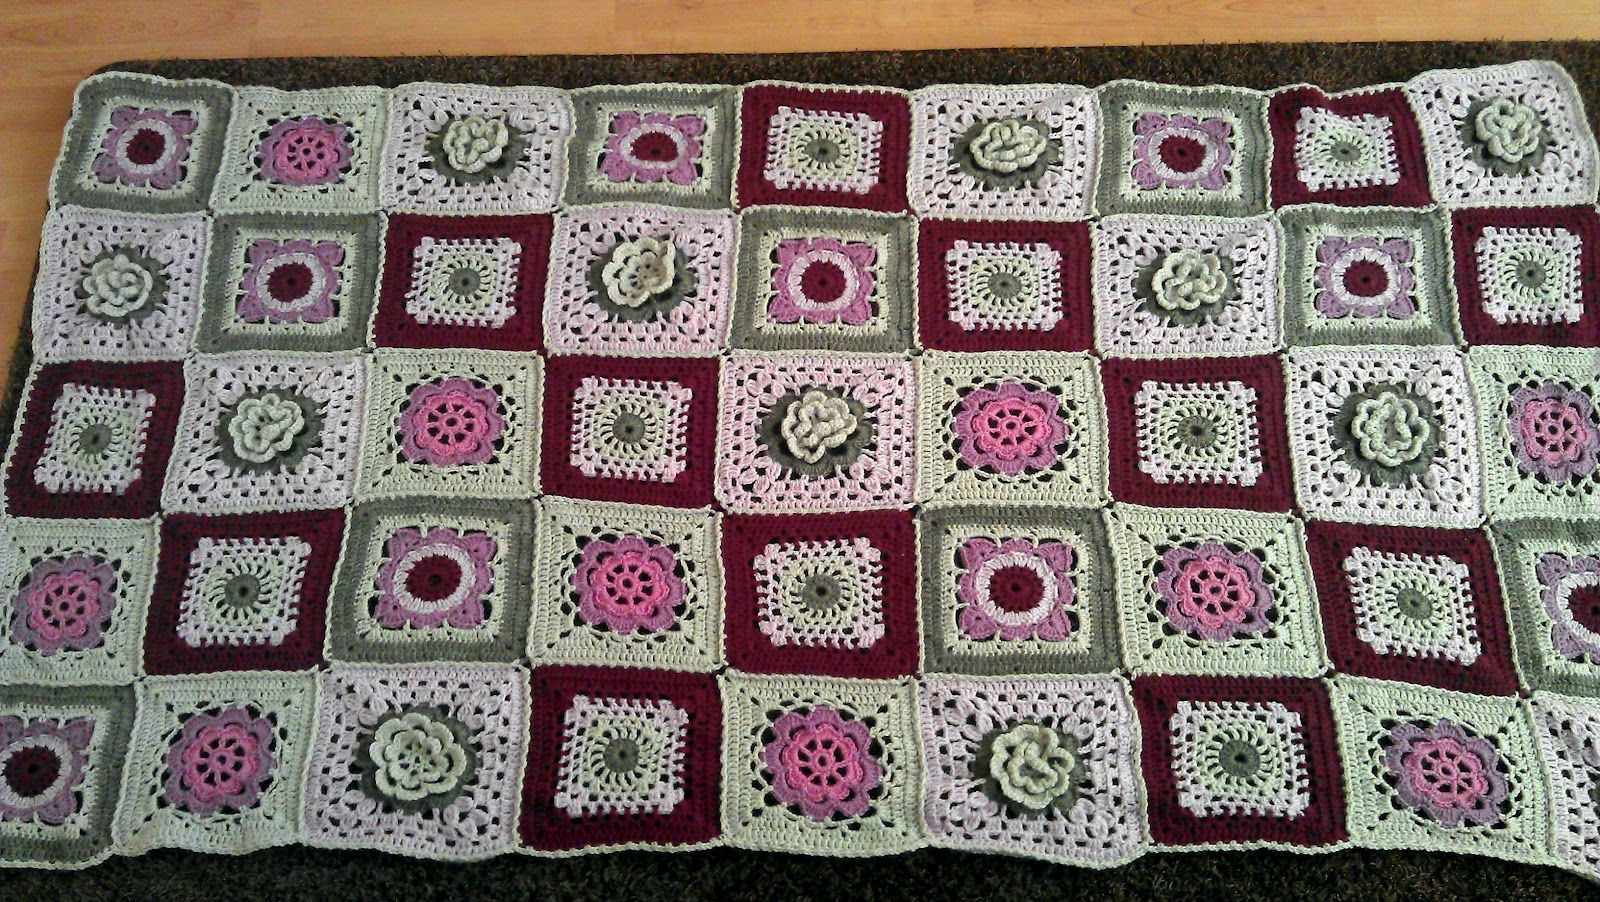 Crocheted Blanket From Karisma